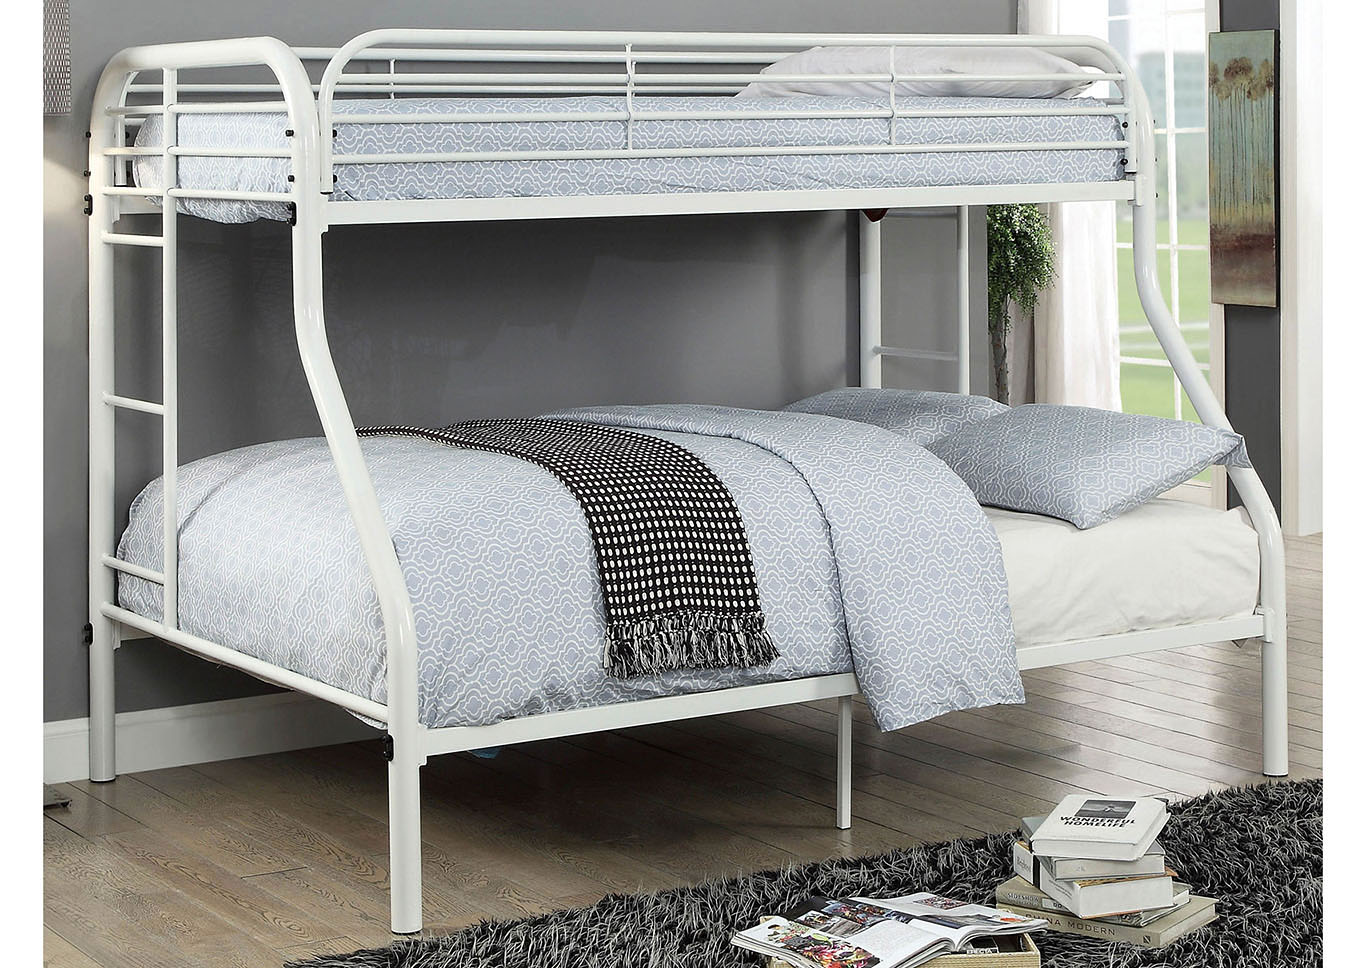 Opal White Twin/Full Metal Bunk Bed,Furniture of America